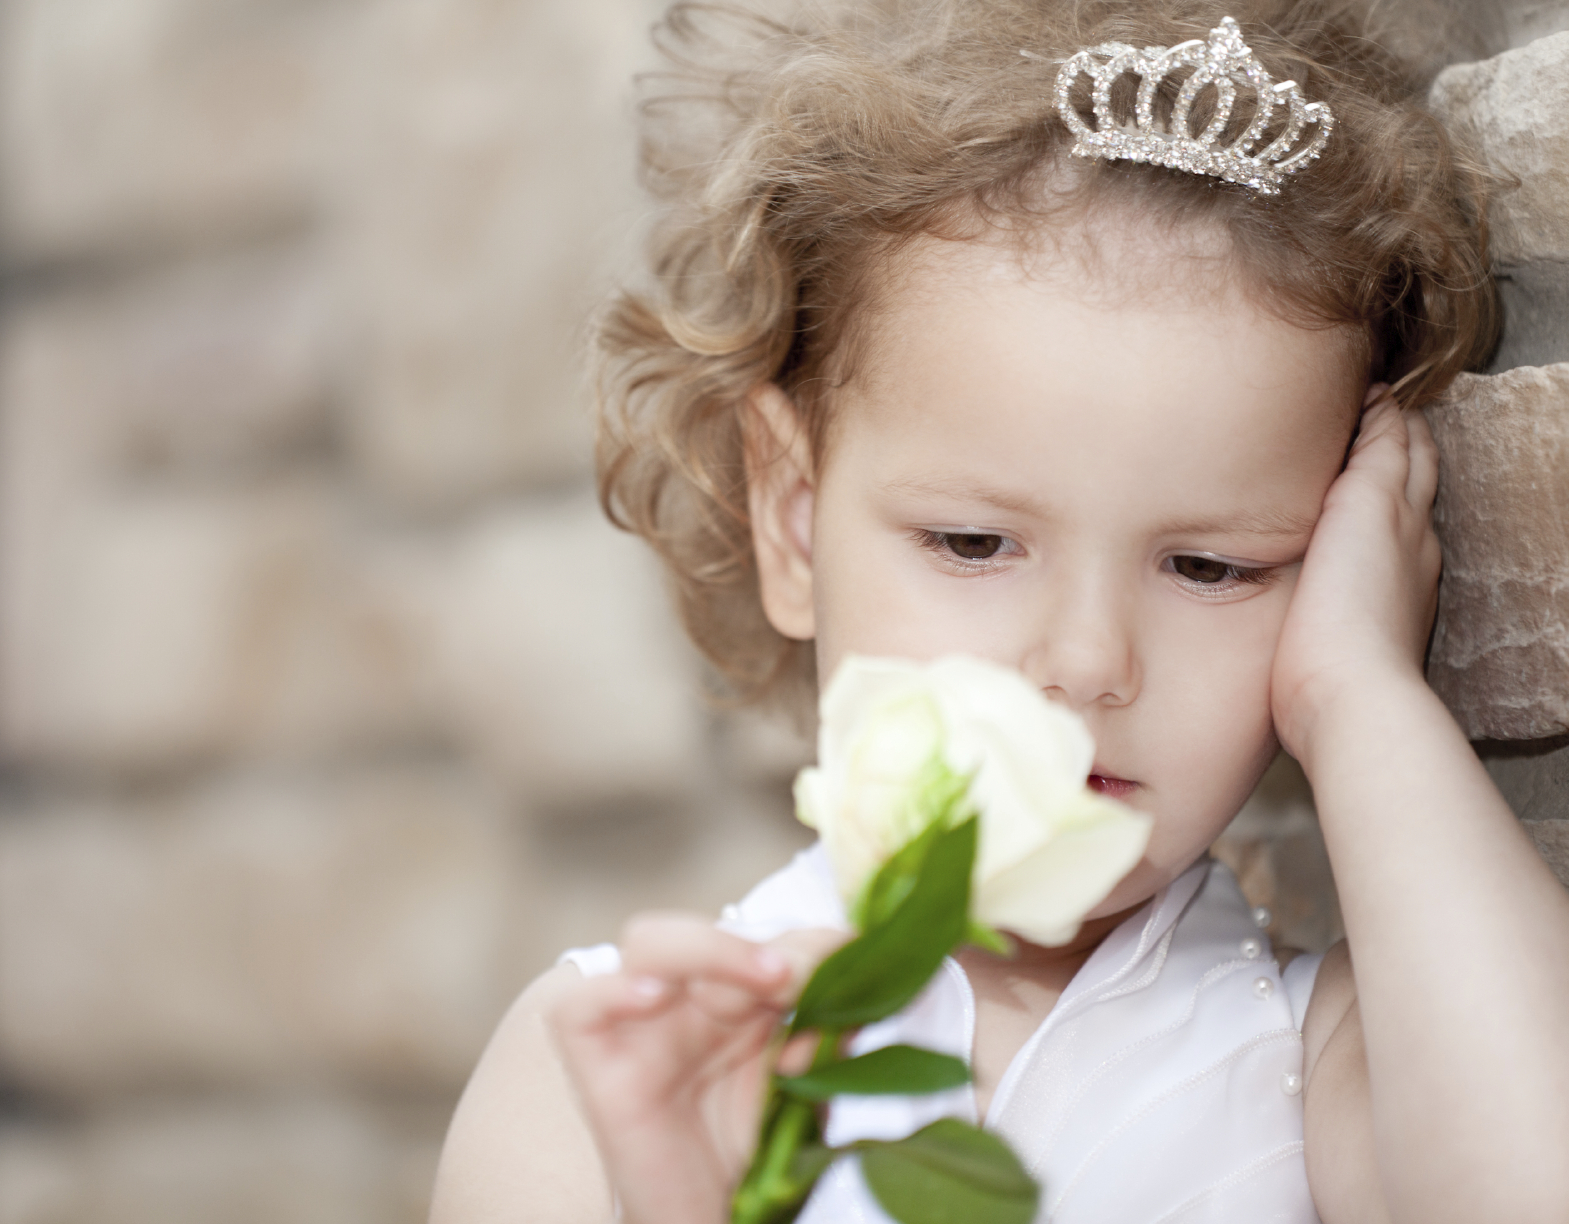 Every little girl longs to be a princess.